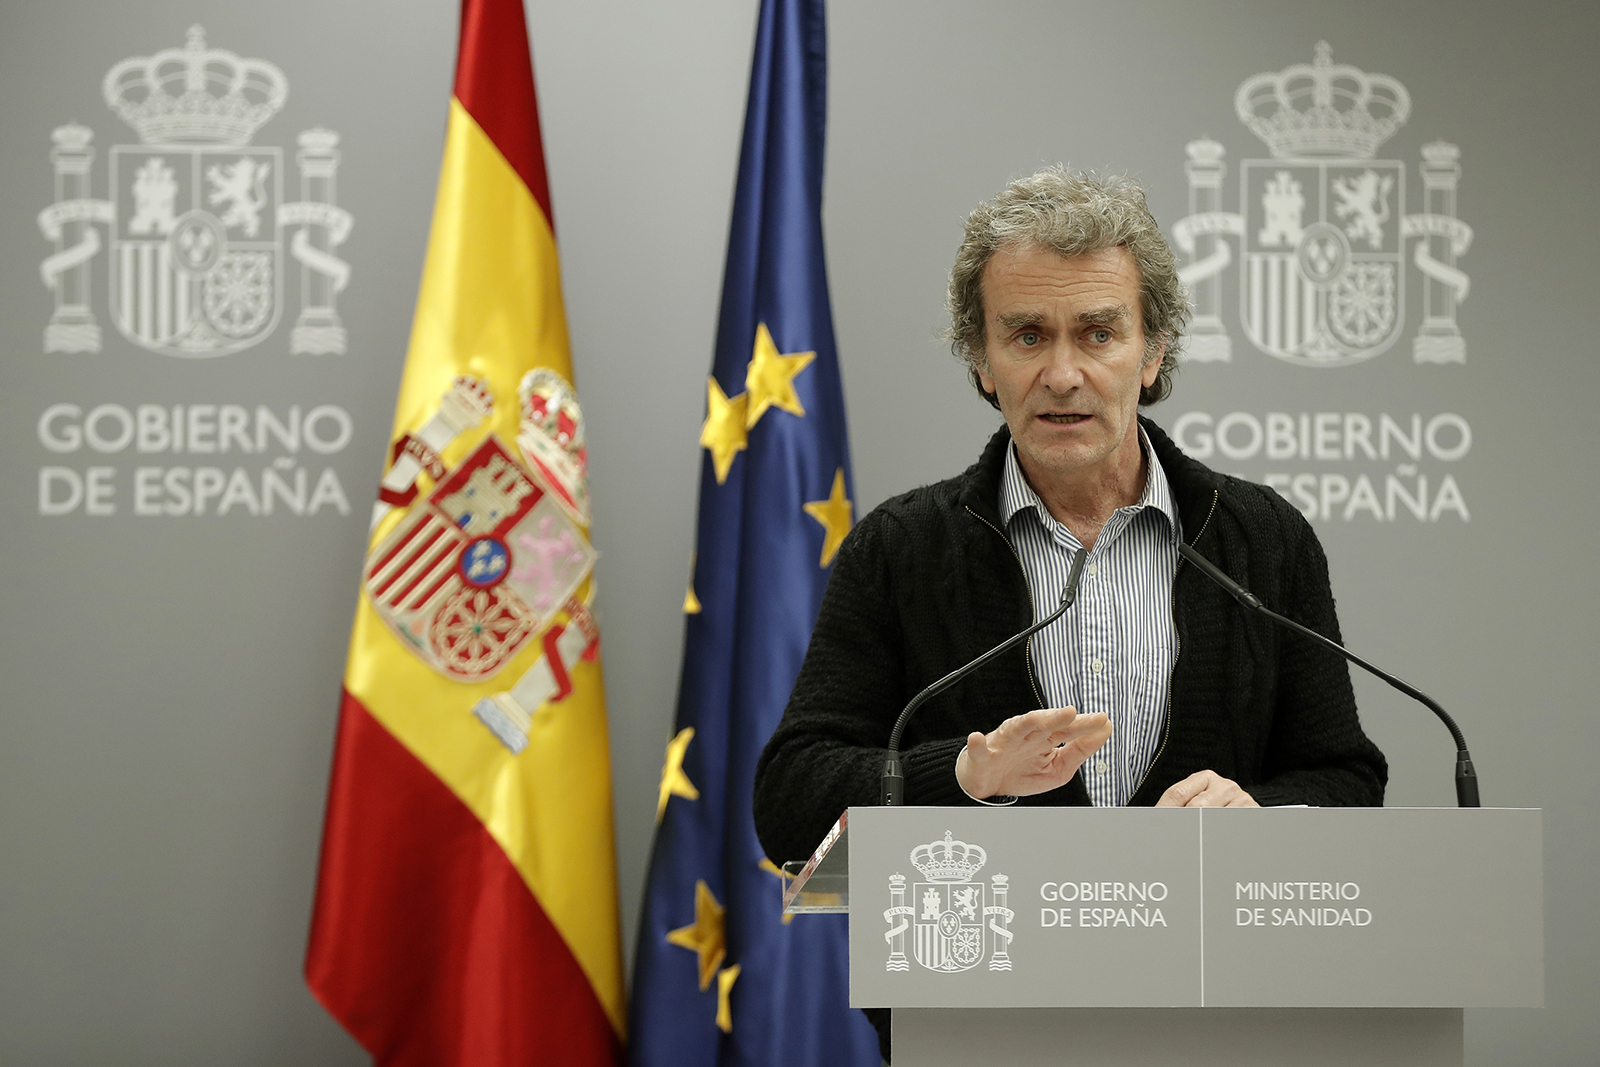 Dr. Fernando Simón, director of the Center for Health Emergencies in Spain, holds a press conference on the latest developments of the Covid-19 pandemic in Madrid, on March 11.